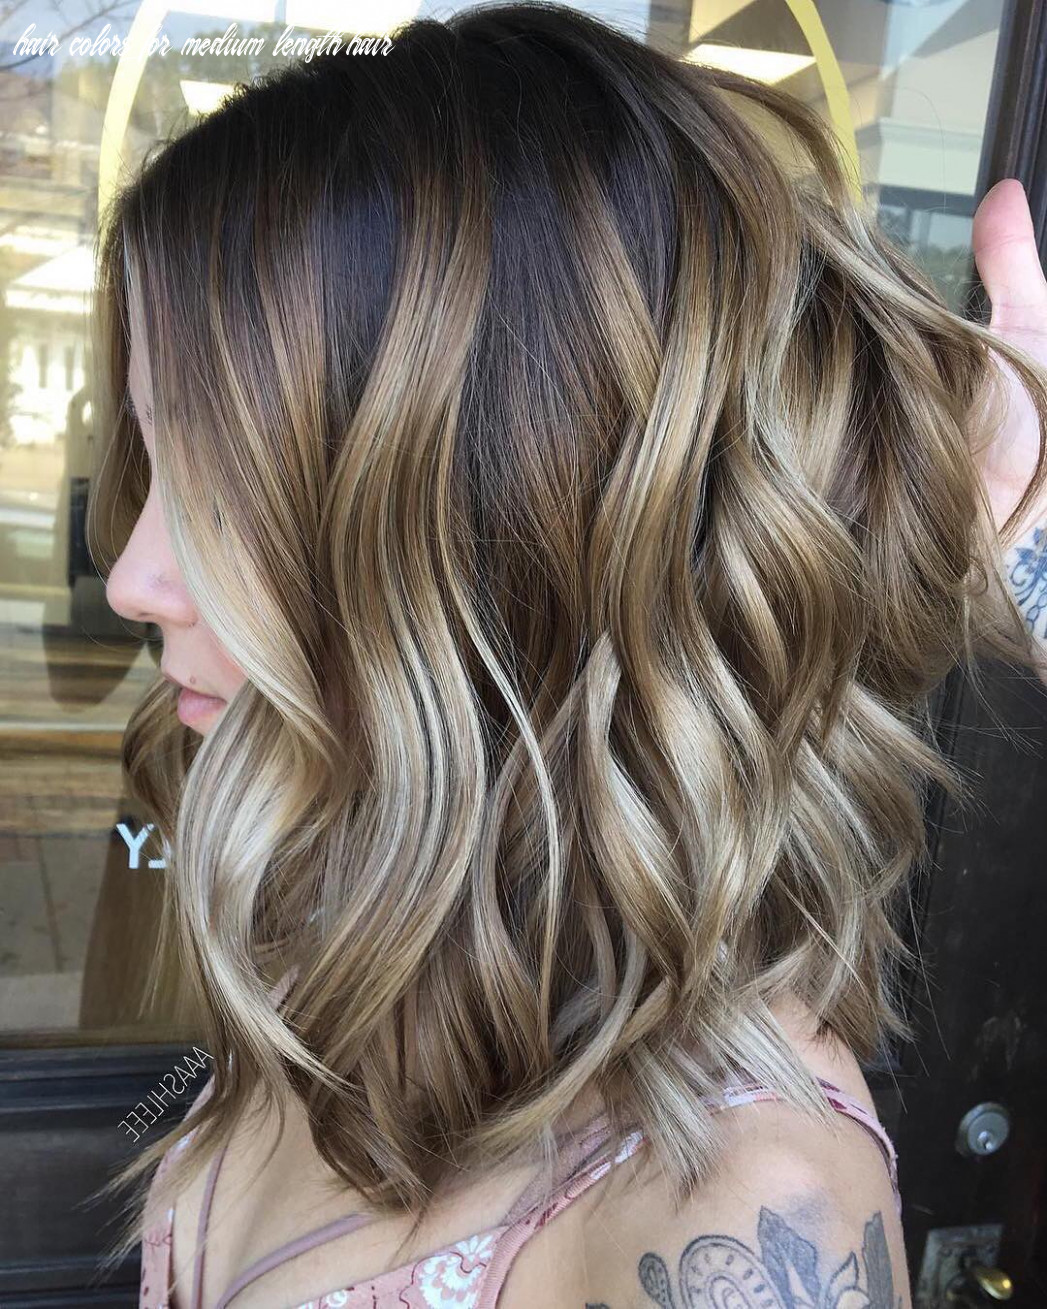 11 Ombre Balayage Hairstyles for Medium Length Hair, Hair Color 11